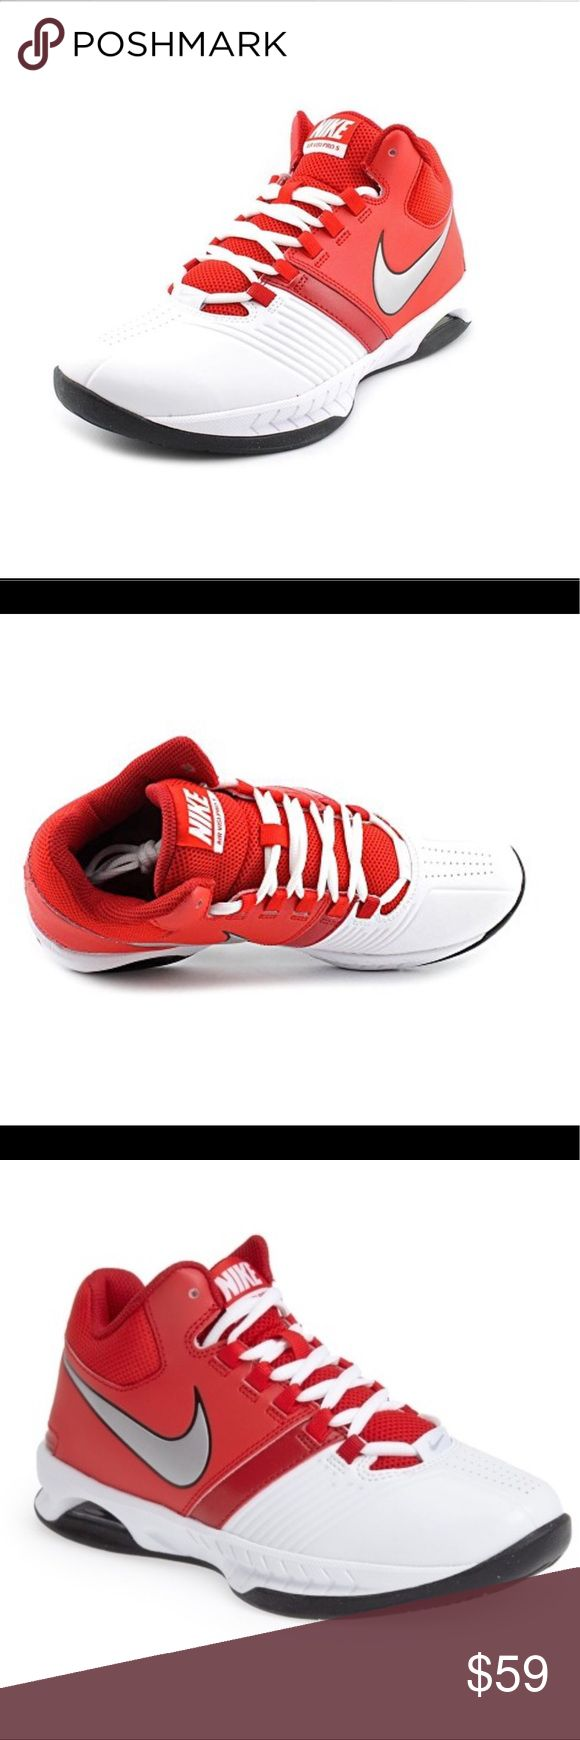 💥Nike Air Visi Pro 5 Women's Basketball Shoes💥 Nike Air Visi Pro 5 Women's Basketball Shoes. Choose the Nike Air Visi Pro 5 basketball shoes and you'll be the star on the court. This basketball shoe is designed for long-lasting cushioning and support that no other model can provide you. The mid-top synthetic collar is crafted to protect your ankles when quick pivoting or running. You'll be able to transition through the game effortlessly  *Durable synthetic  *Flex grooves allow for…